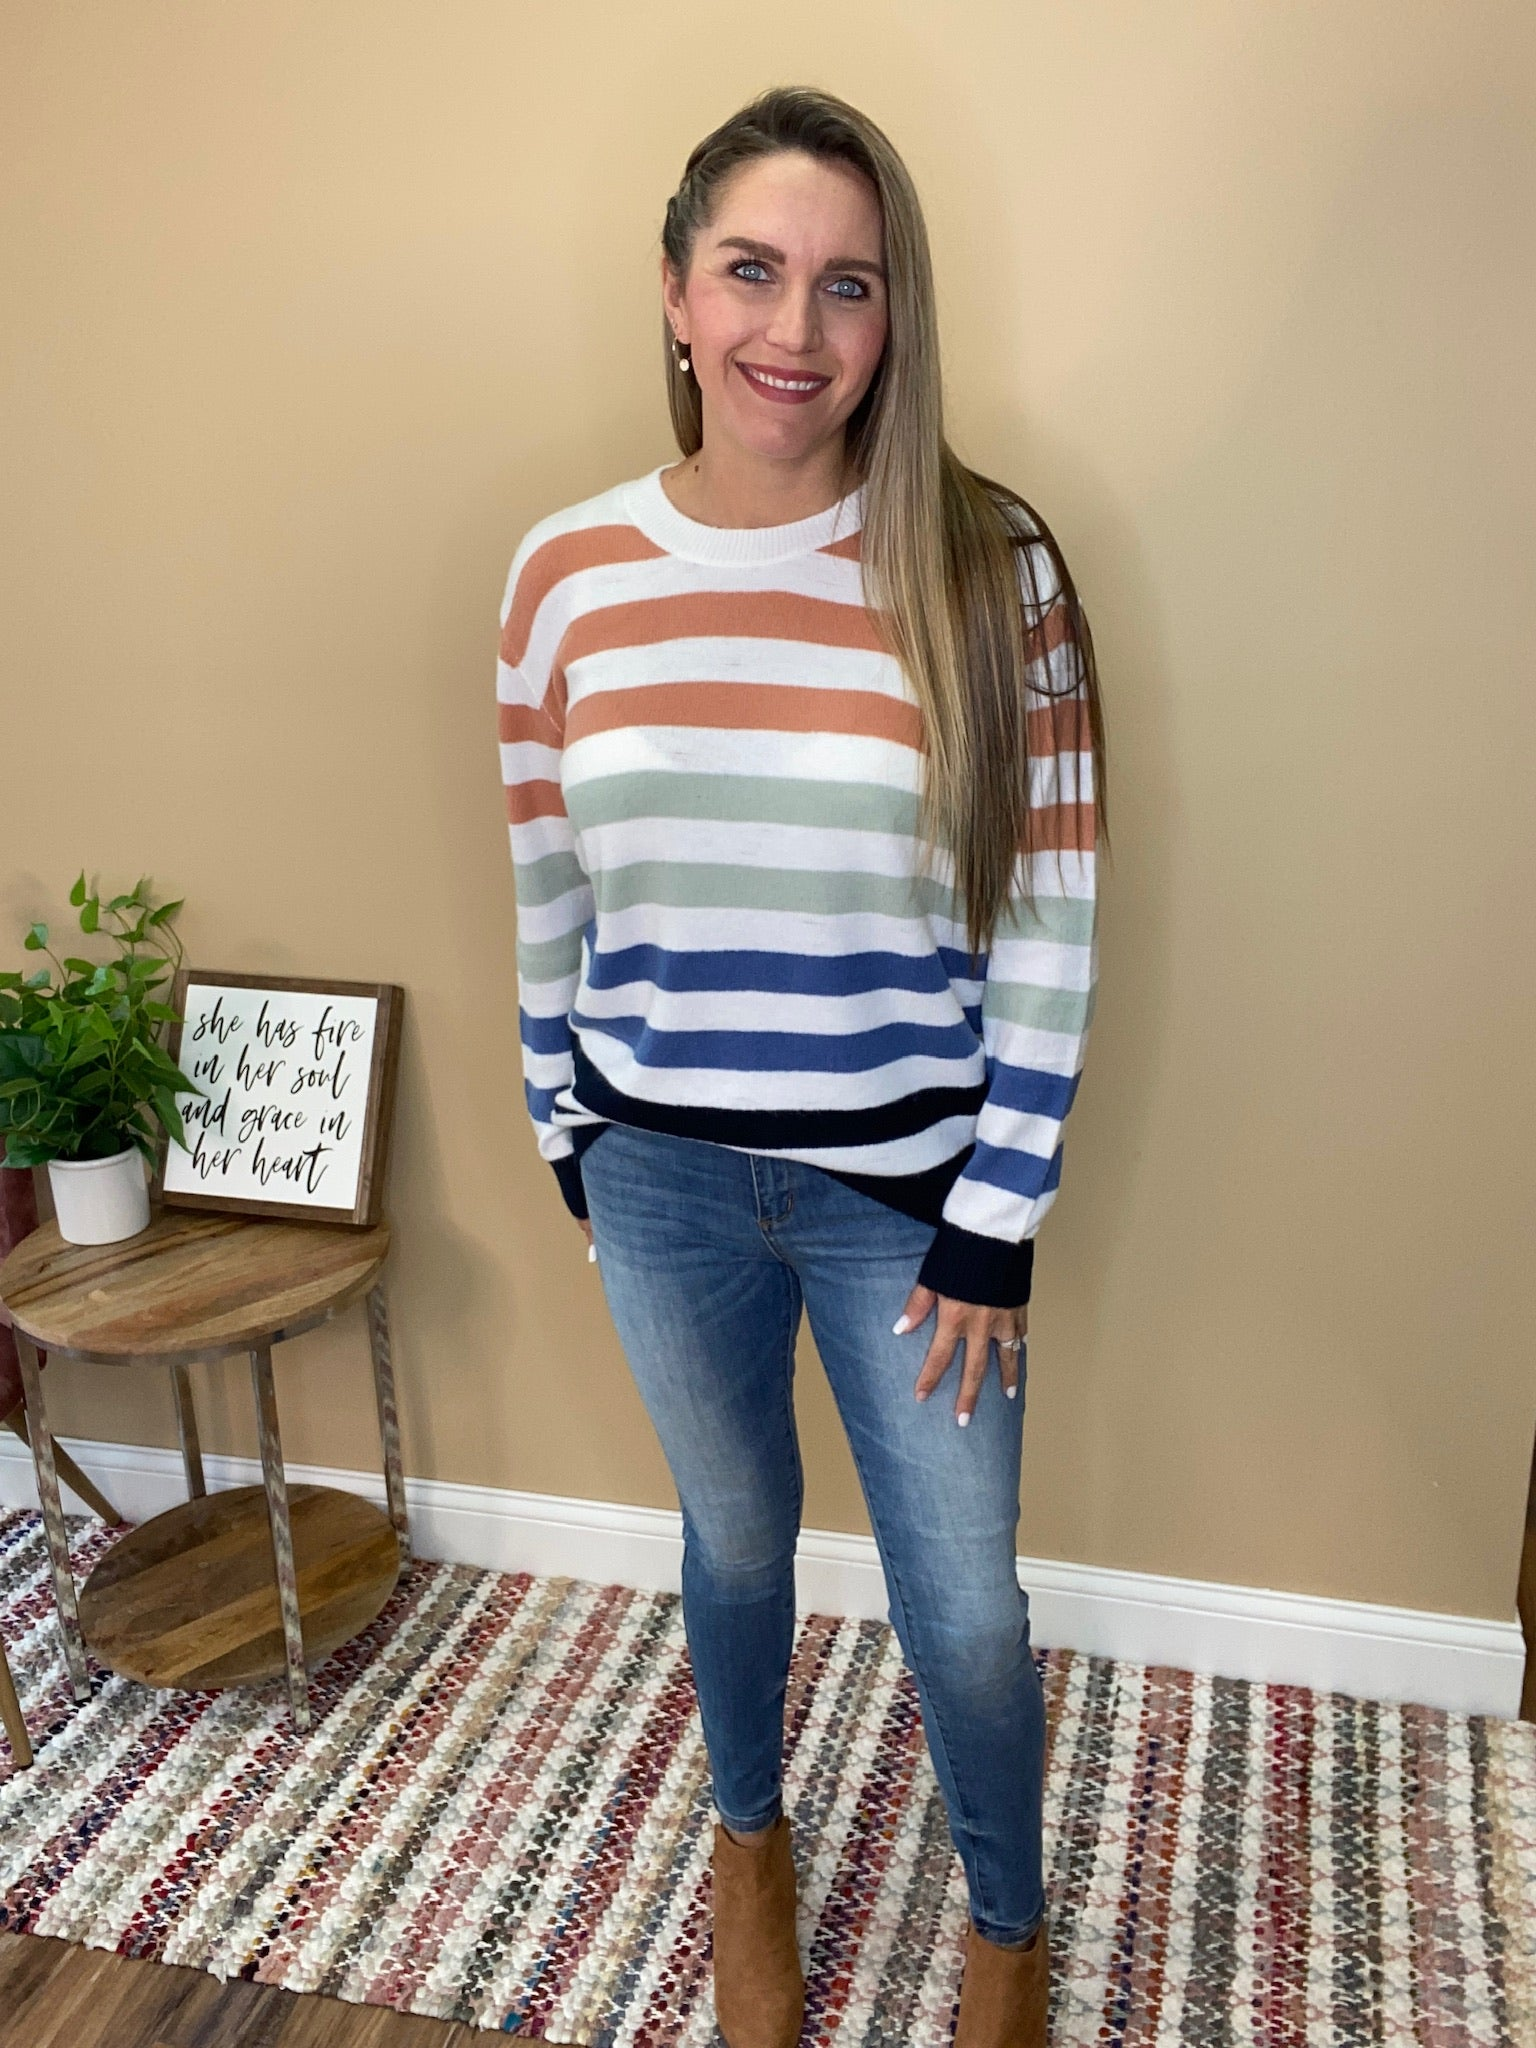 Elena Multi Colored Striped Sweater